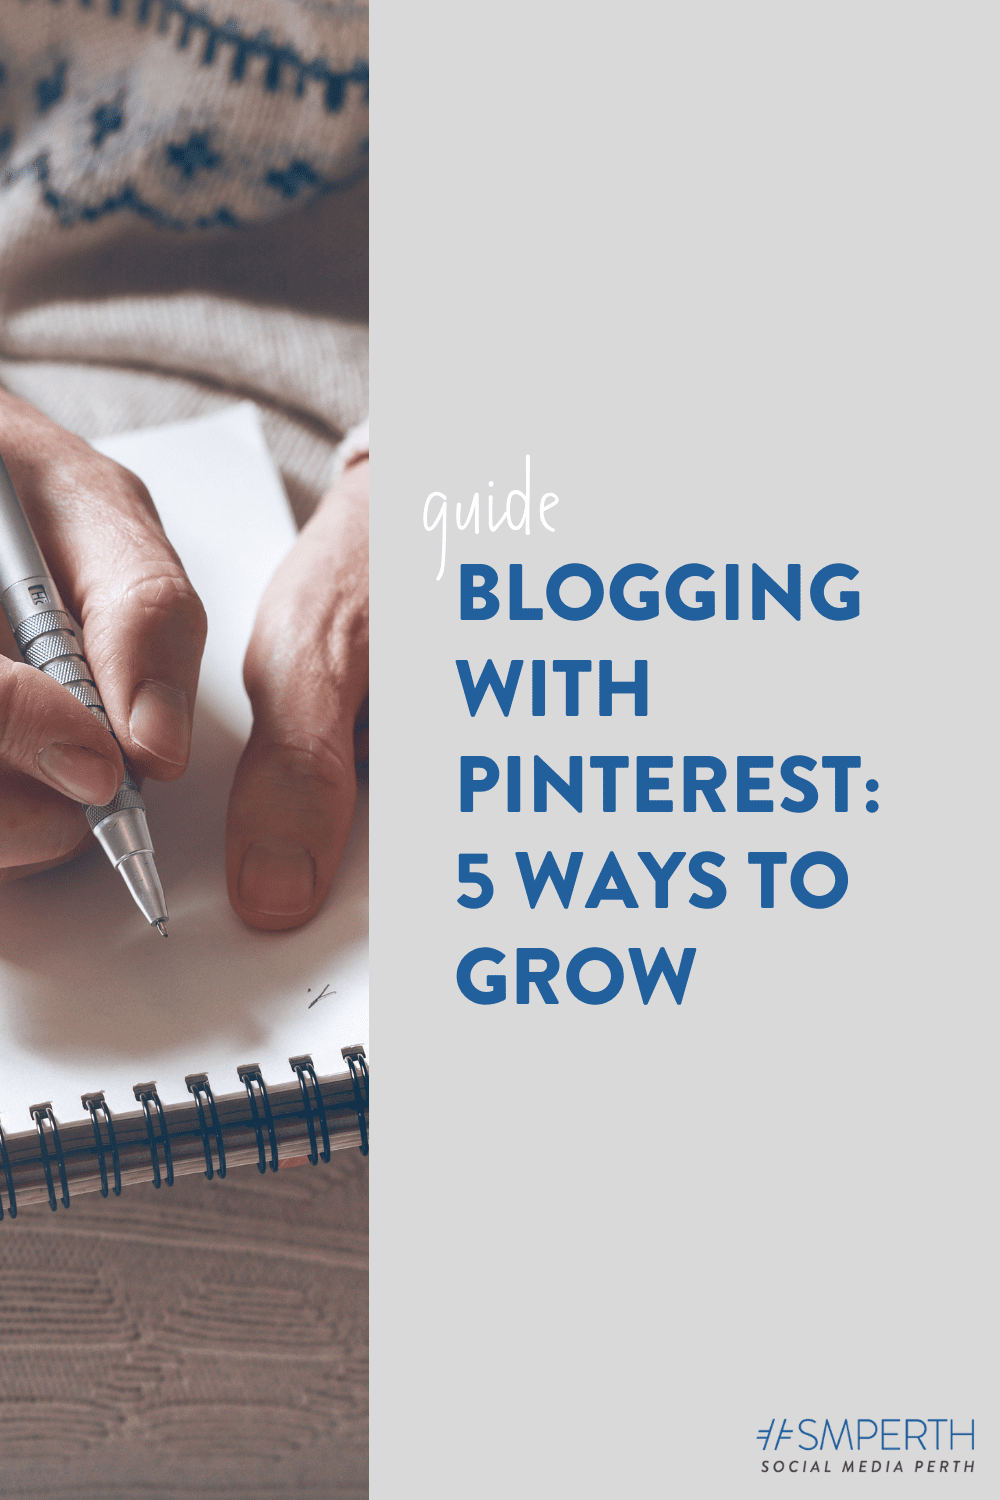 Blogging With Pinterest: 5 Ways To Grow